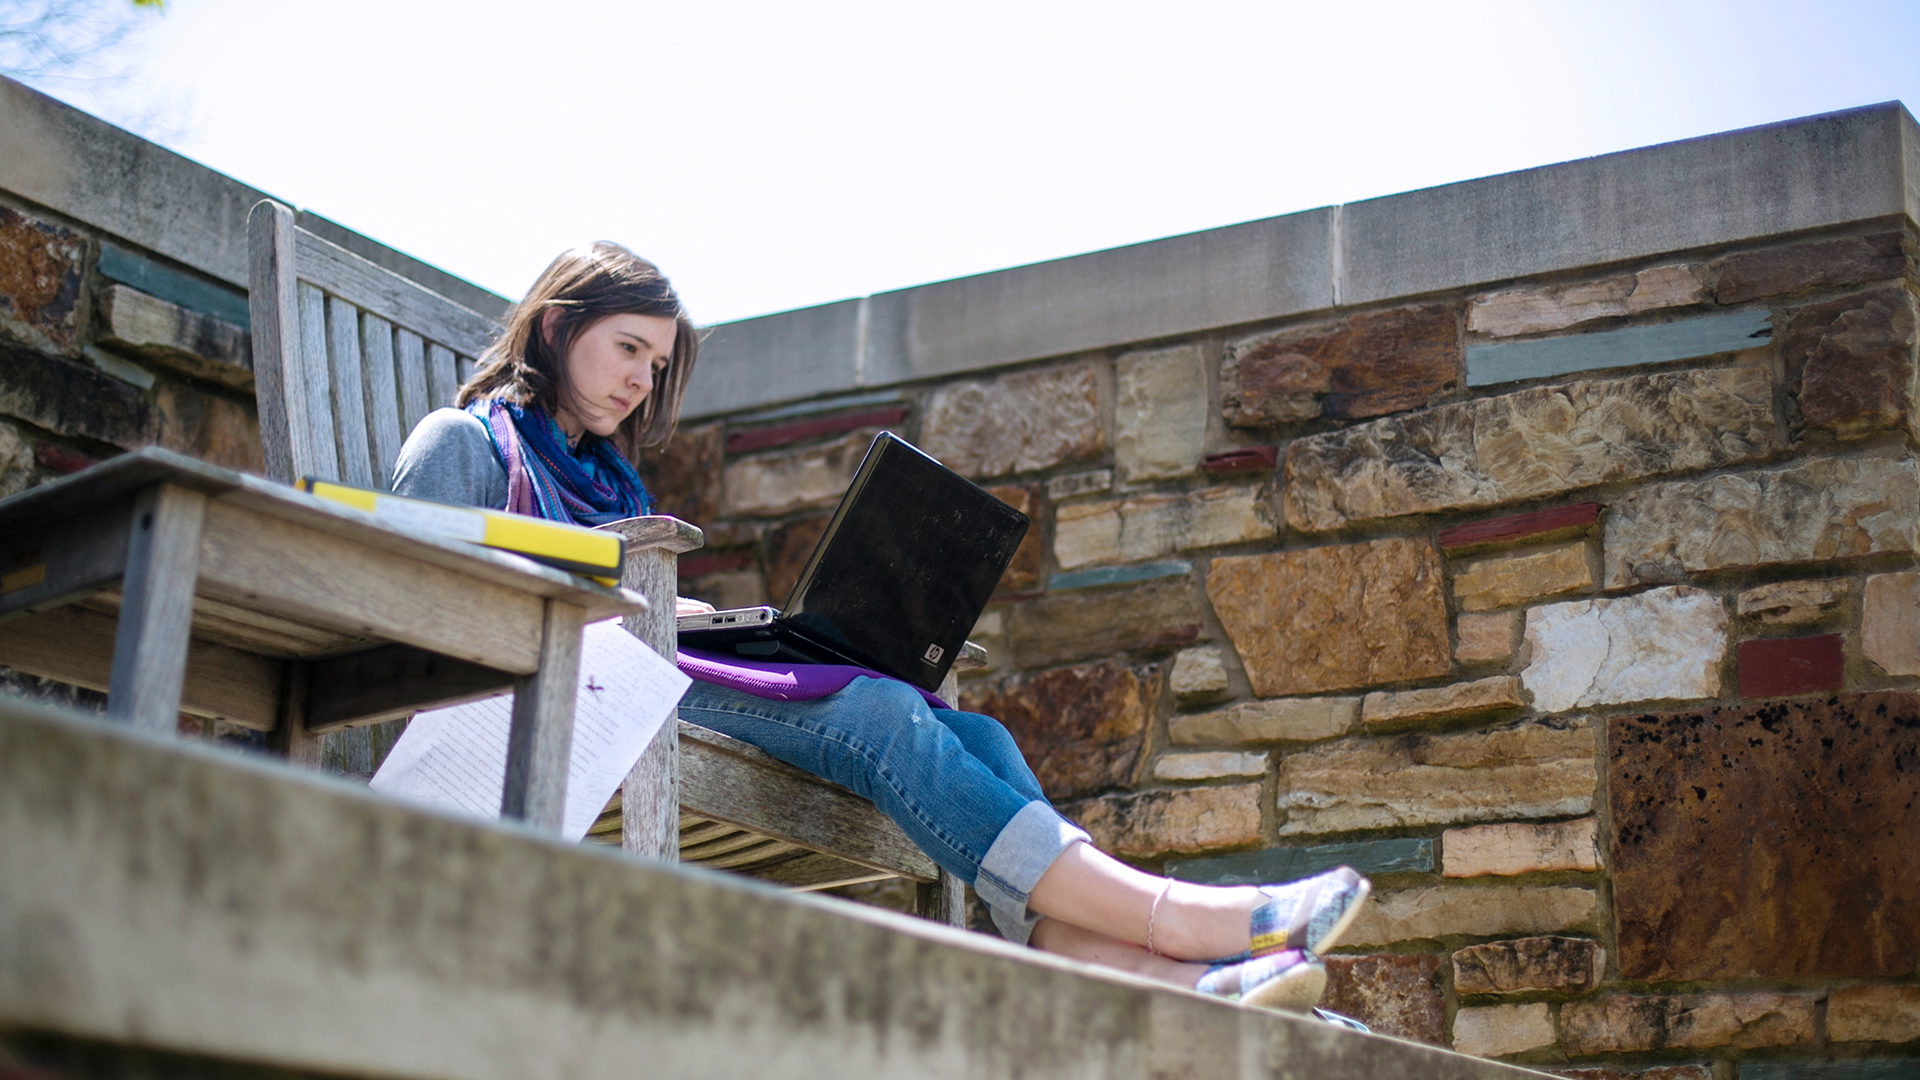 Student with a laptop on campus